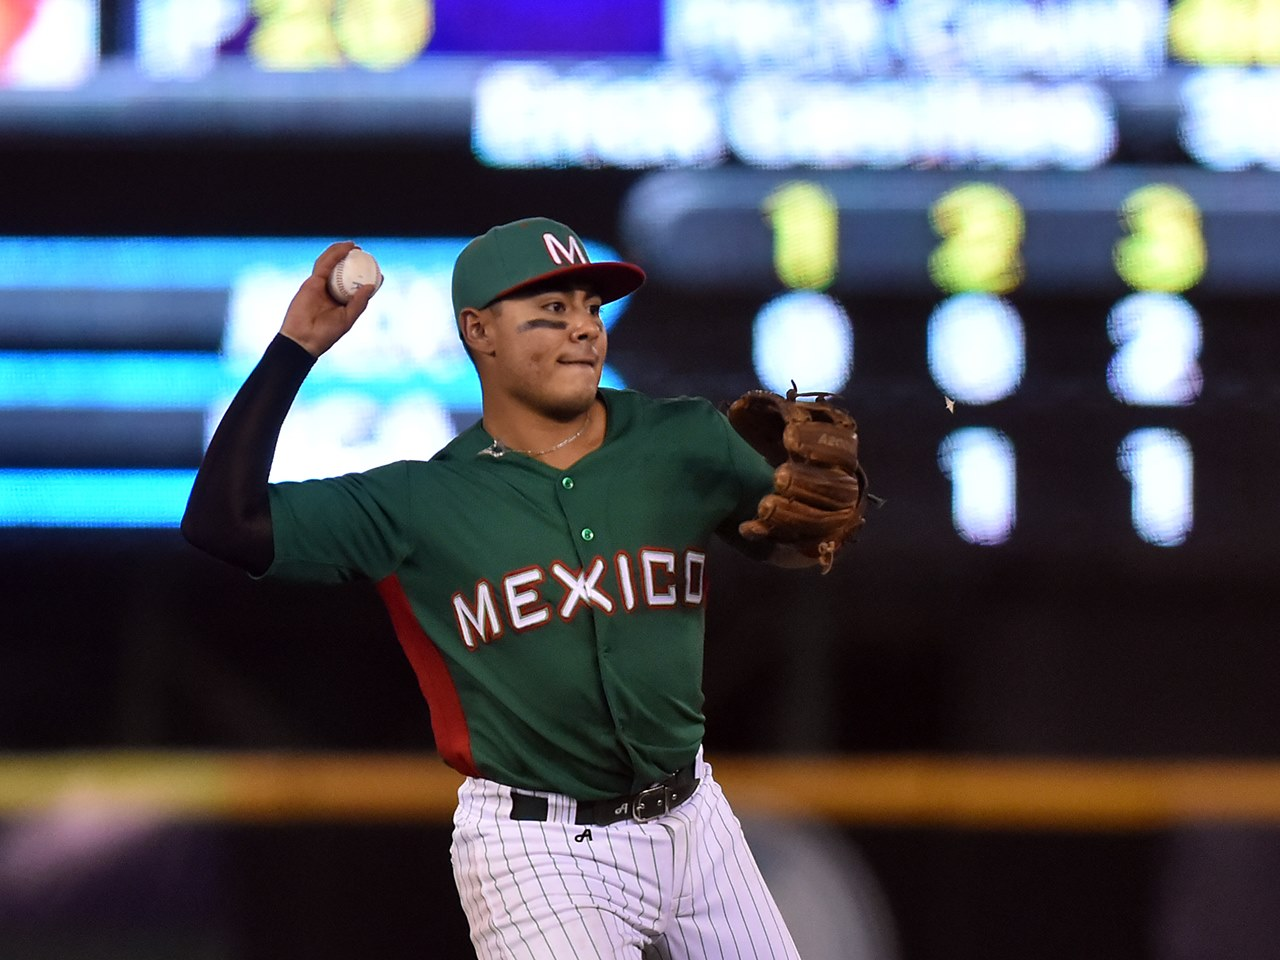 Mexican Baseball League (LMB), Clubs, President backing their National Team in WBSC U-23 Baseball World Cup Qualifier